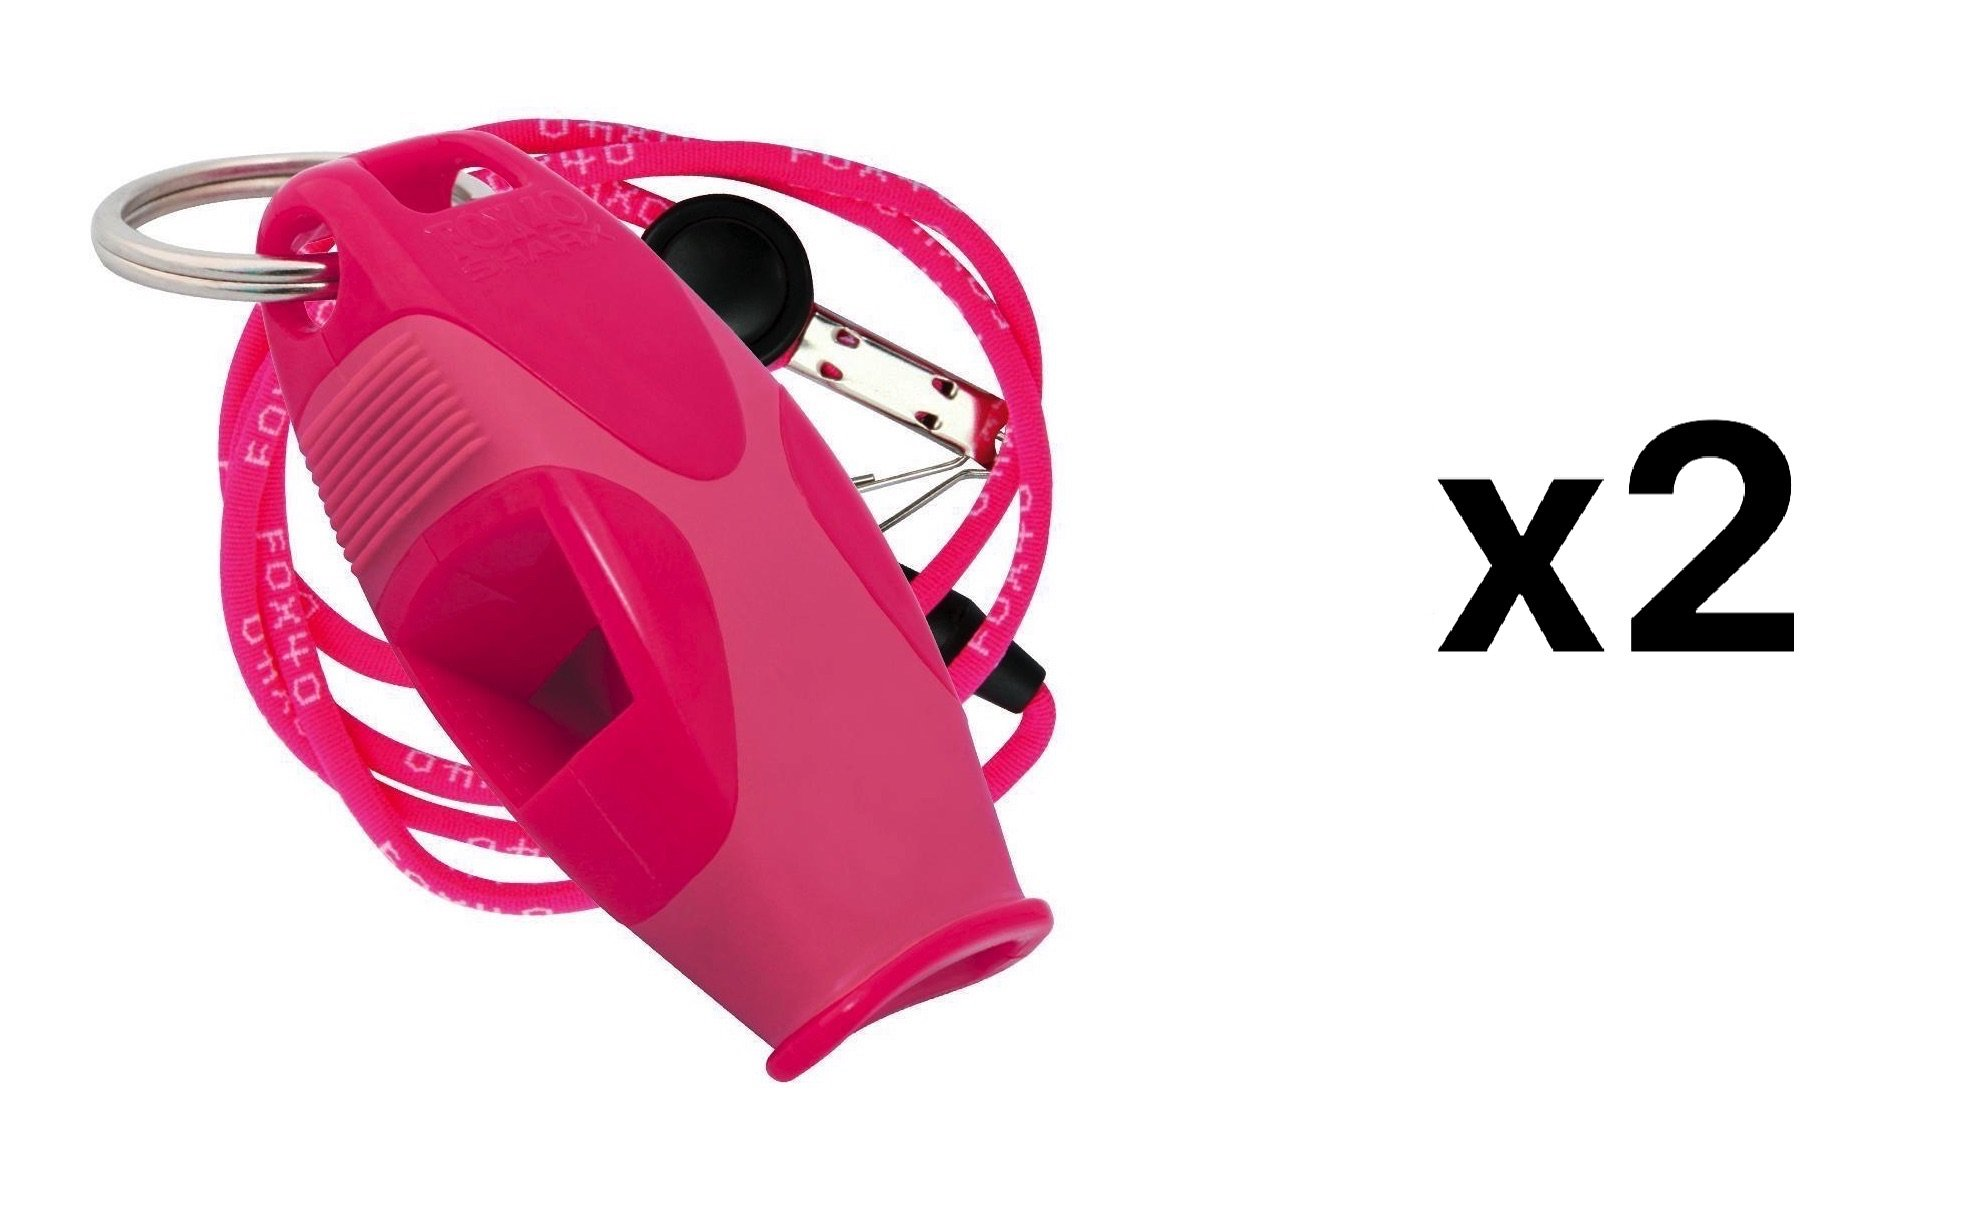 Fox 40 Sharx Whistle w/Lanyard Referee Survival Outdoor Safety Dog Pink (2-Pack)